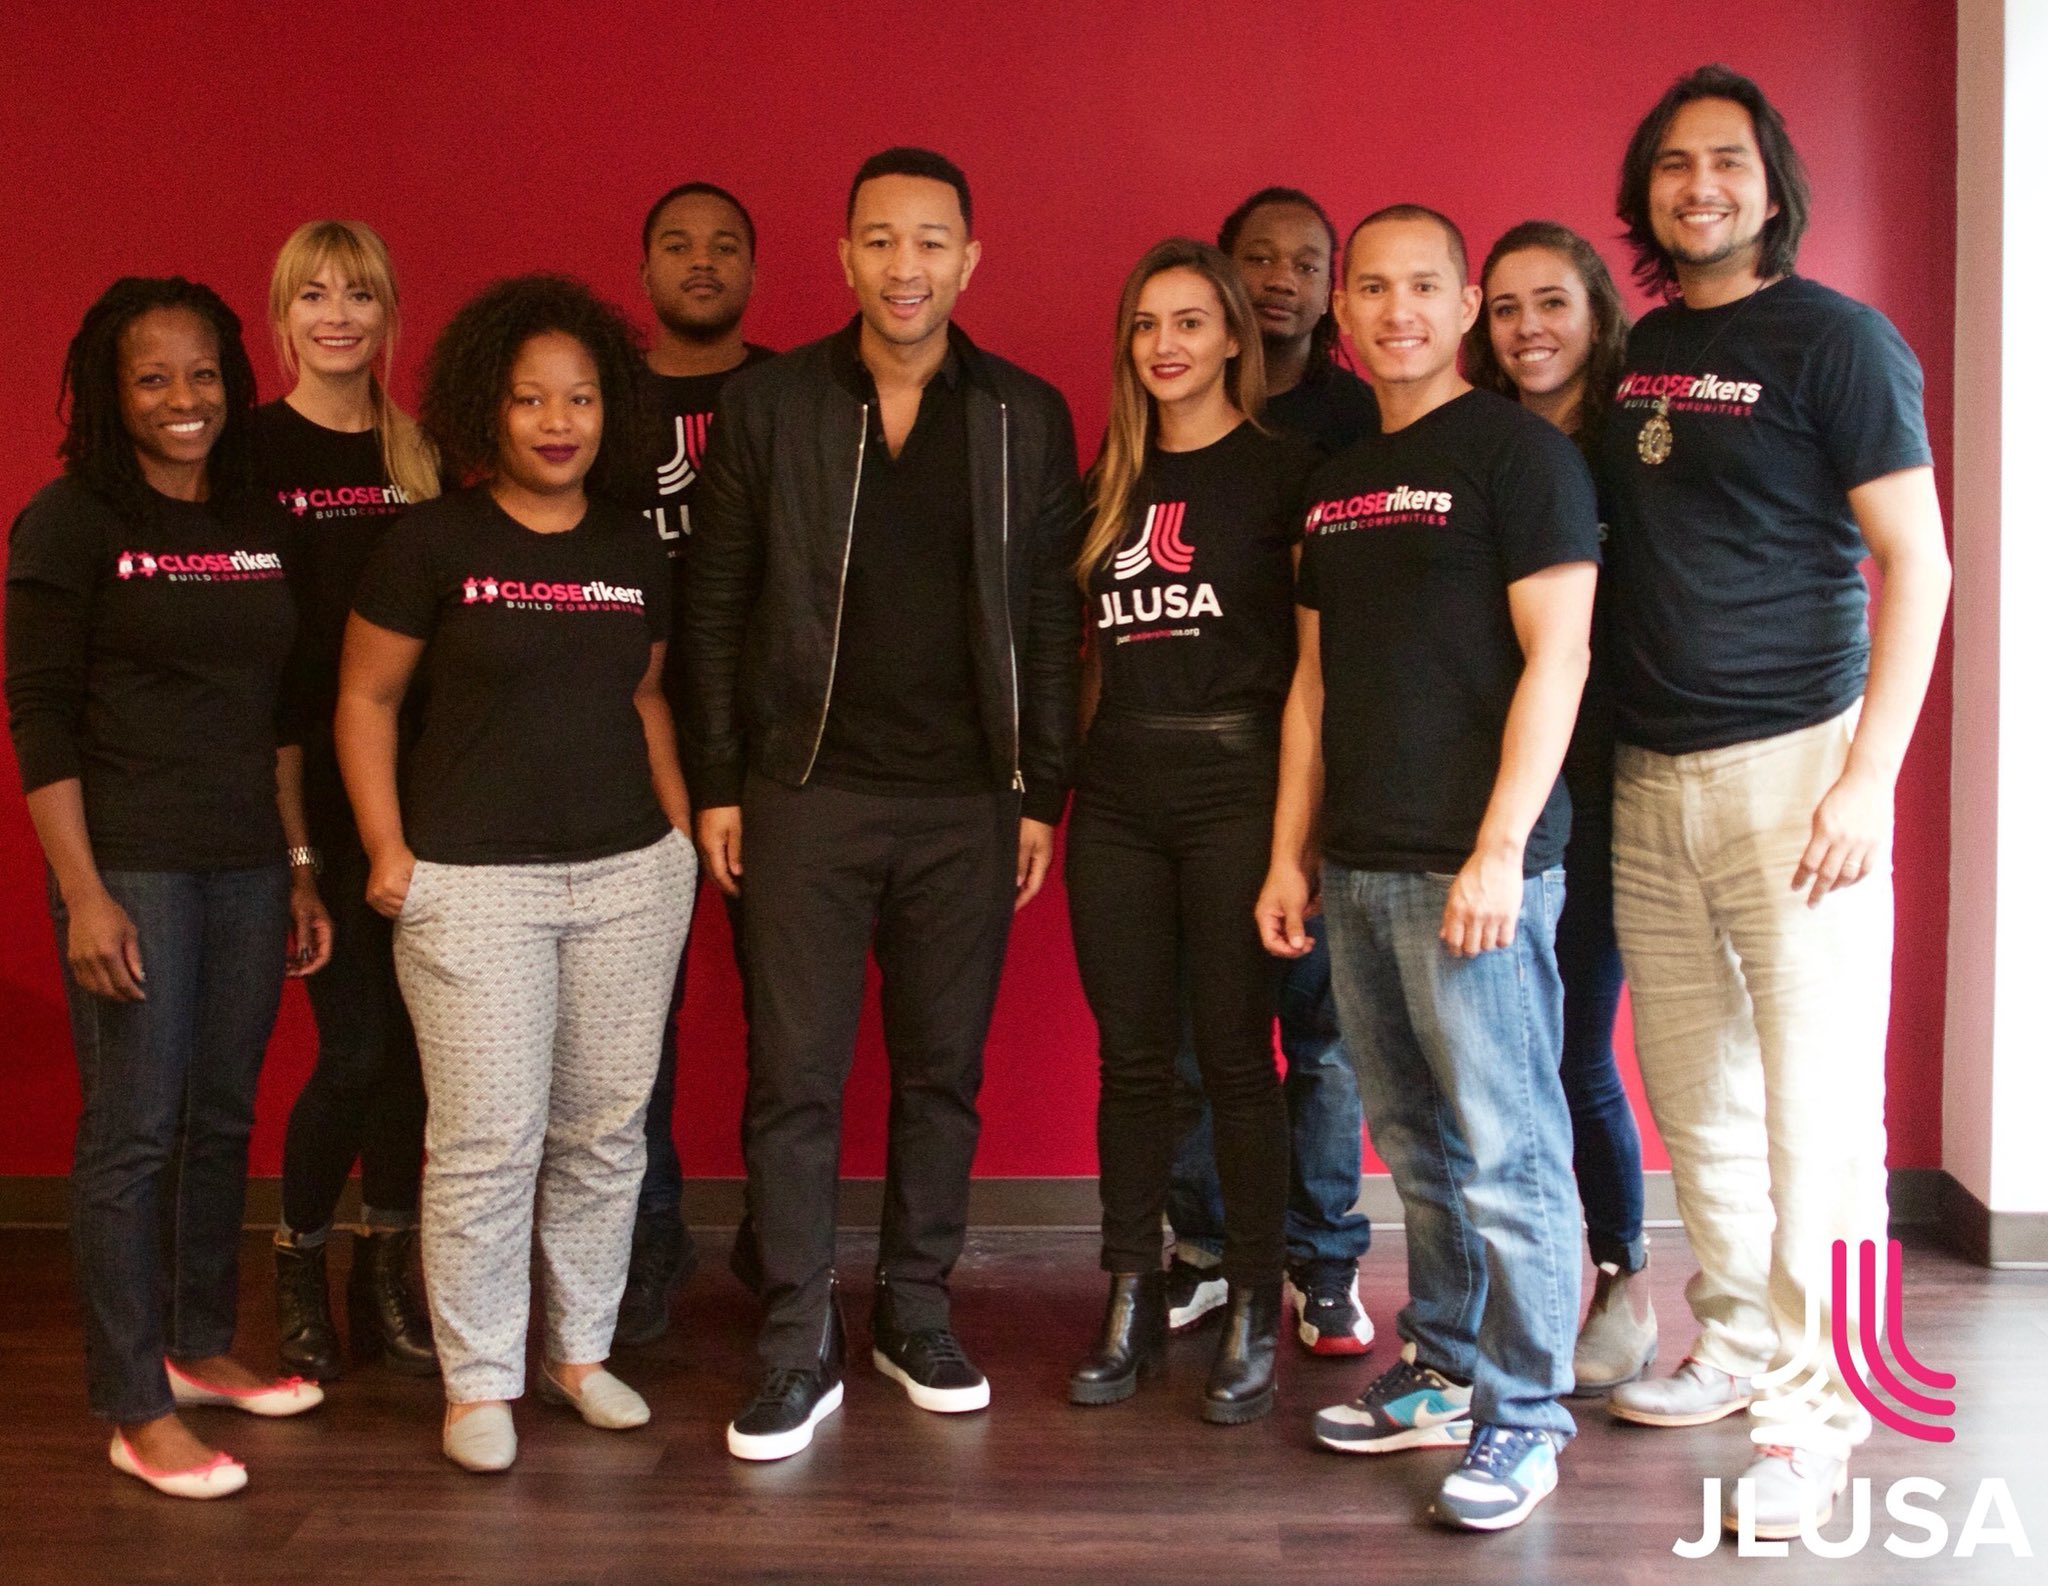 RT @glennEmartin: That moment when you're working to @CLOSErikers & .@johnlegend drops by... https://t.co/OWVZO3nx8W